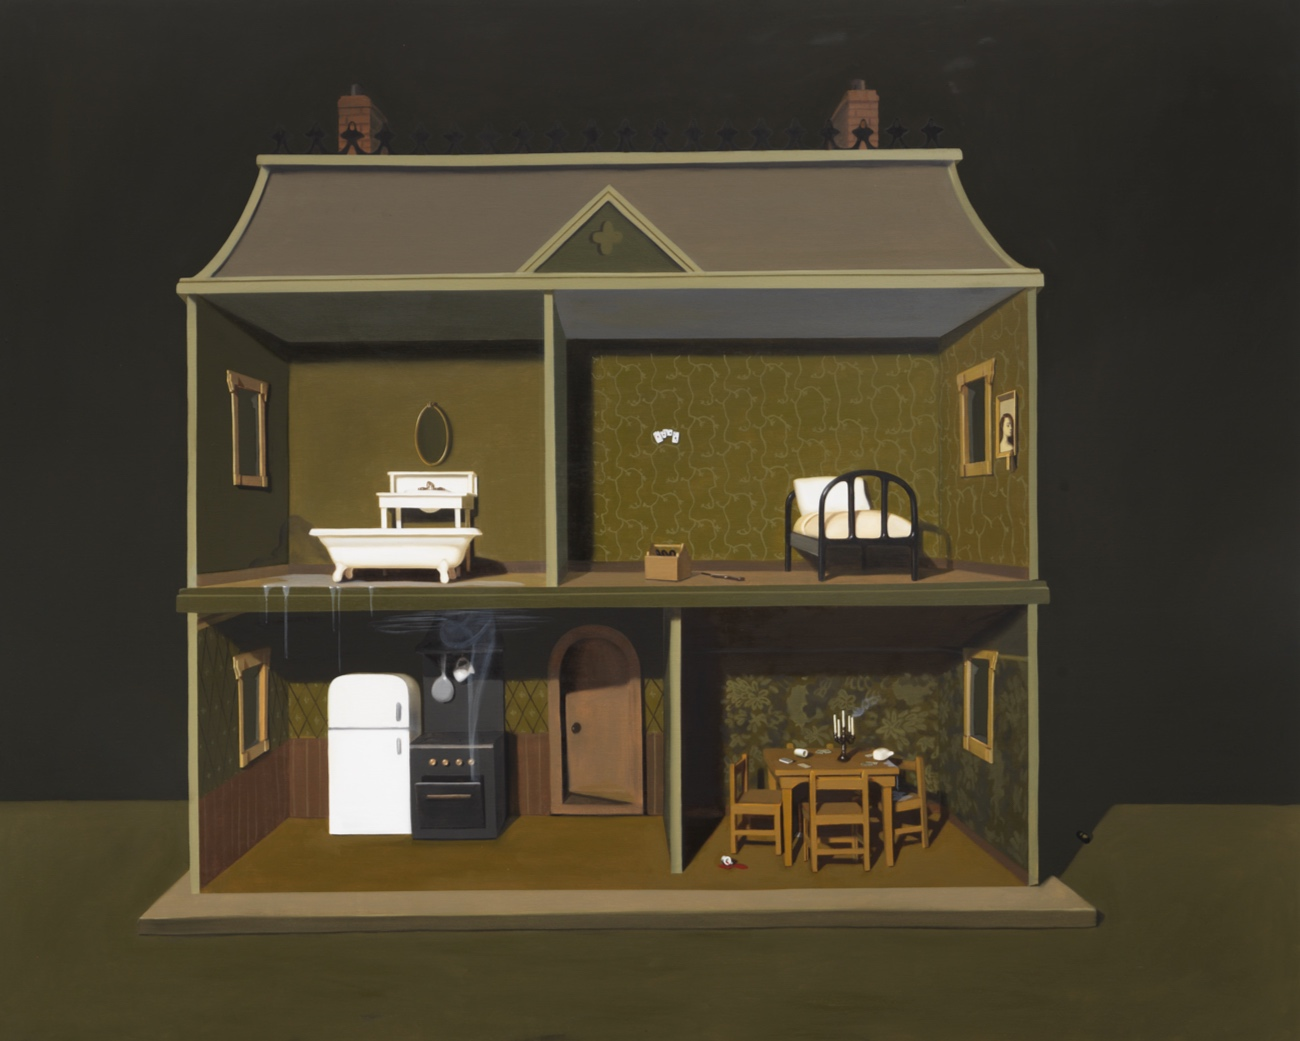 Anatomy of Small House,  2019, Oil on panel 48 x 60 inches (121.92 x 152.4 cm)